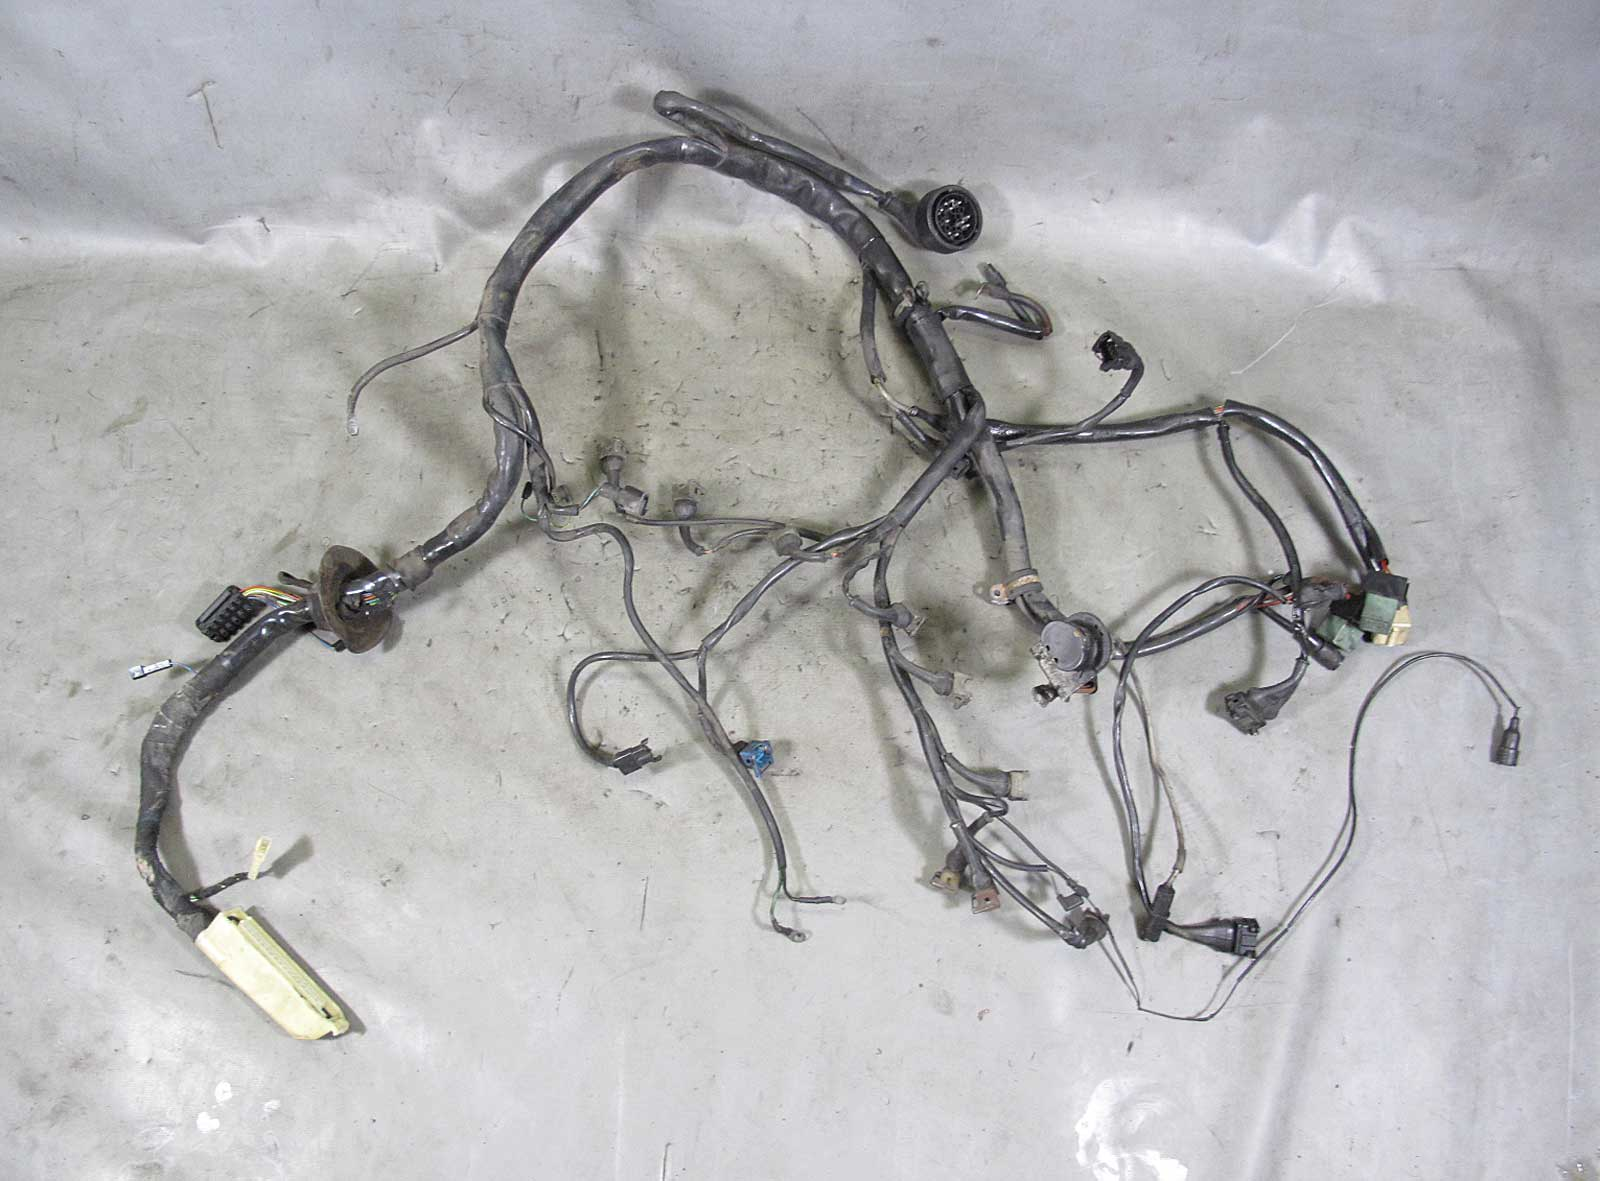 inv_013922 damaged 1986 1987 bmw e30 325e m20 eta engine wiring harness used bmw m20 wiring harness at crackthecode.co